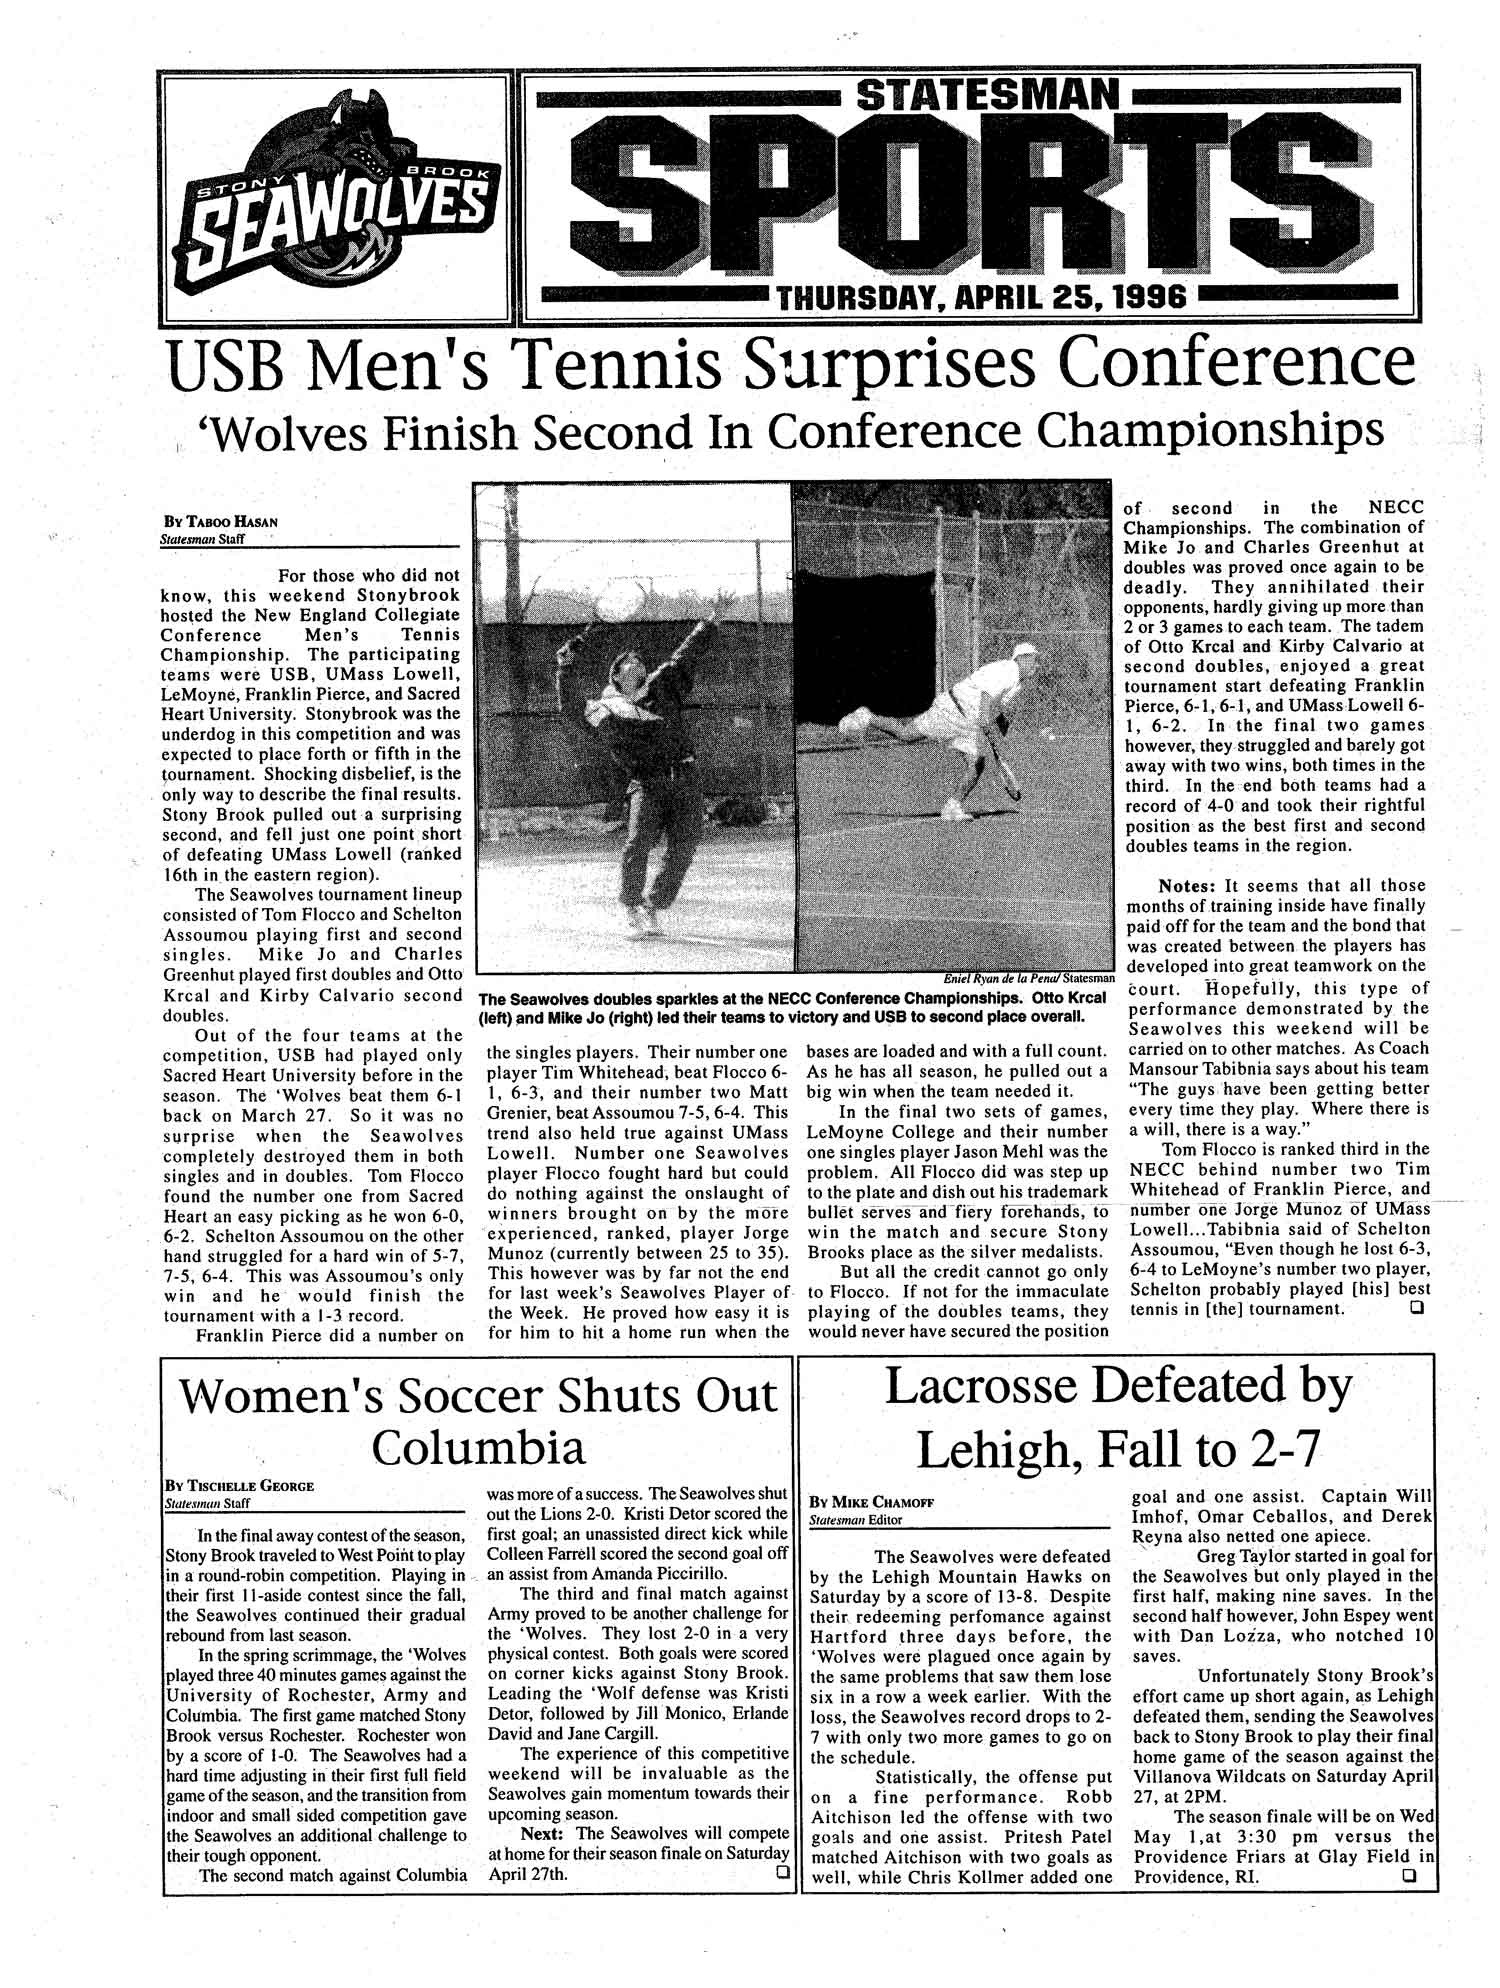 USB Men's Tennis Surprises Conference 'Wolves Finish Second In Conference Championships